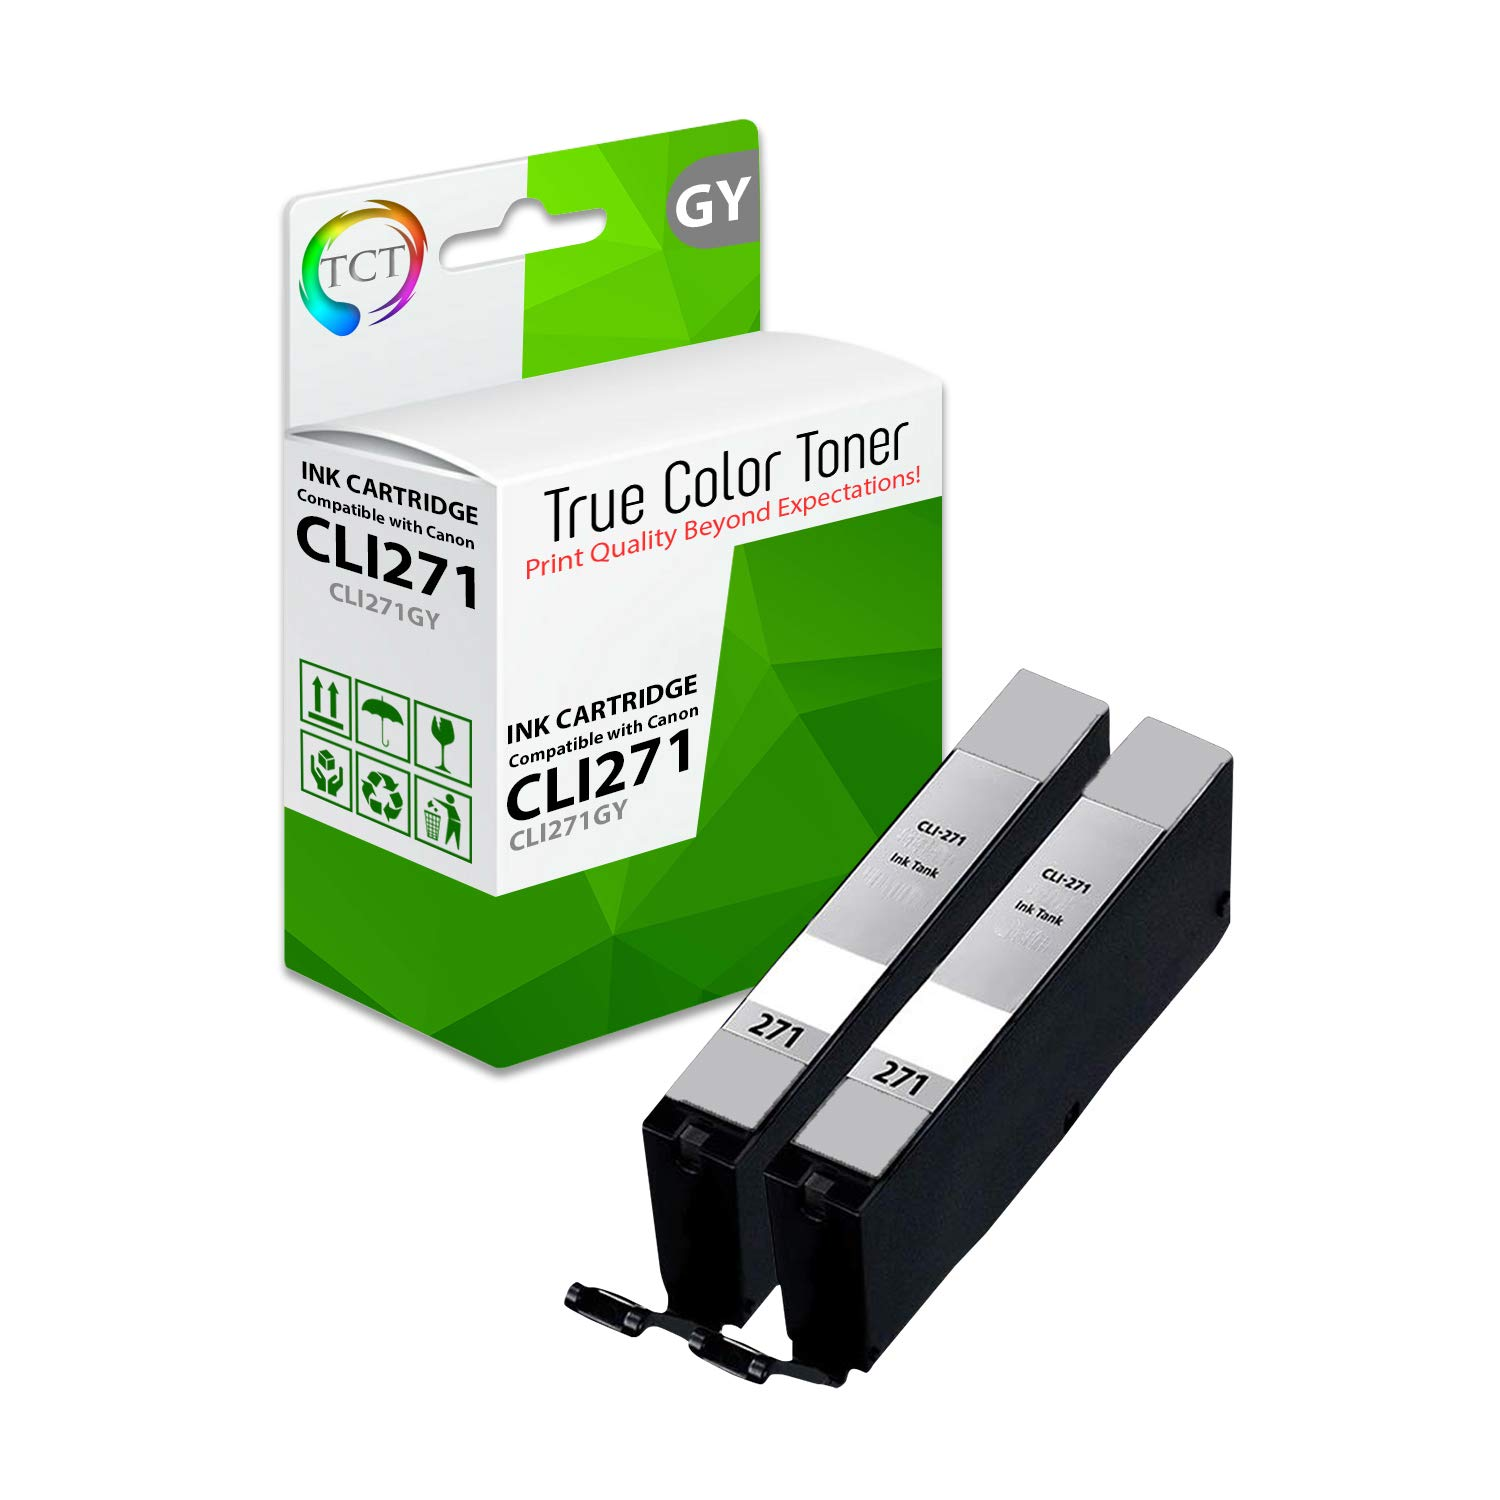 TCT Compatible Ink Cartridge Replacement for Canon CLI-271 CLI271 Gray Works with Canon Pixma MG5720 MG5722 MG6820 MG6822 MG7720 TS5020 TS6020 TS8020 TS9020 Printers (665 Pages) - 2 Pack